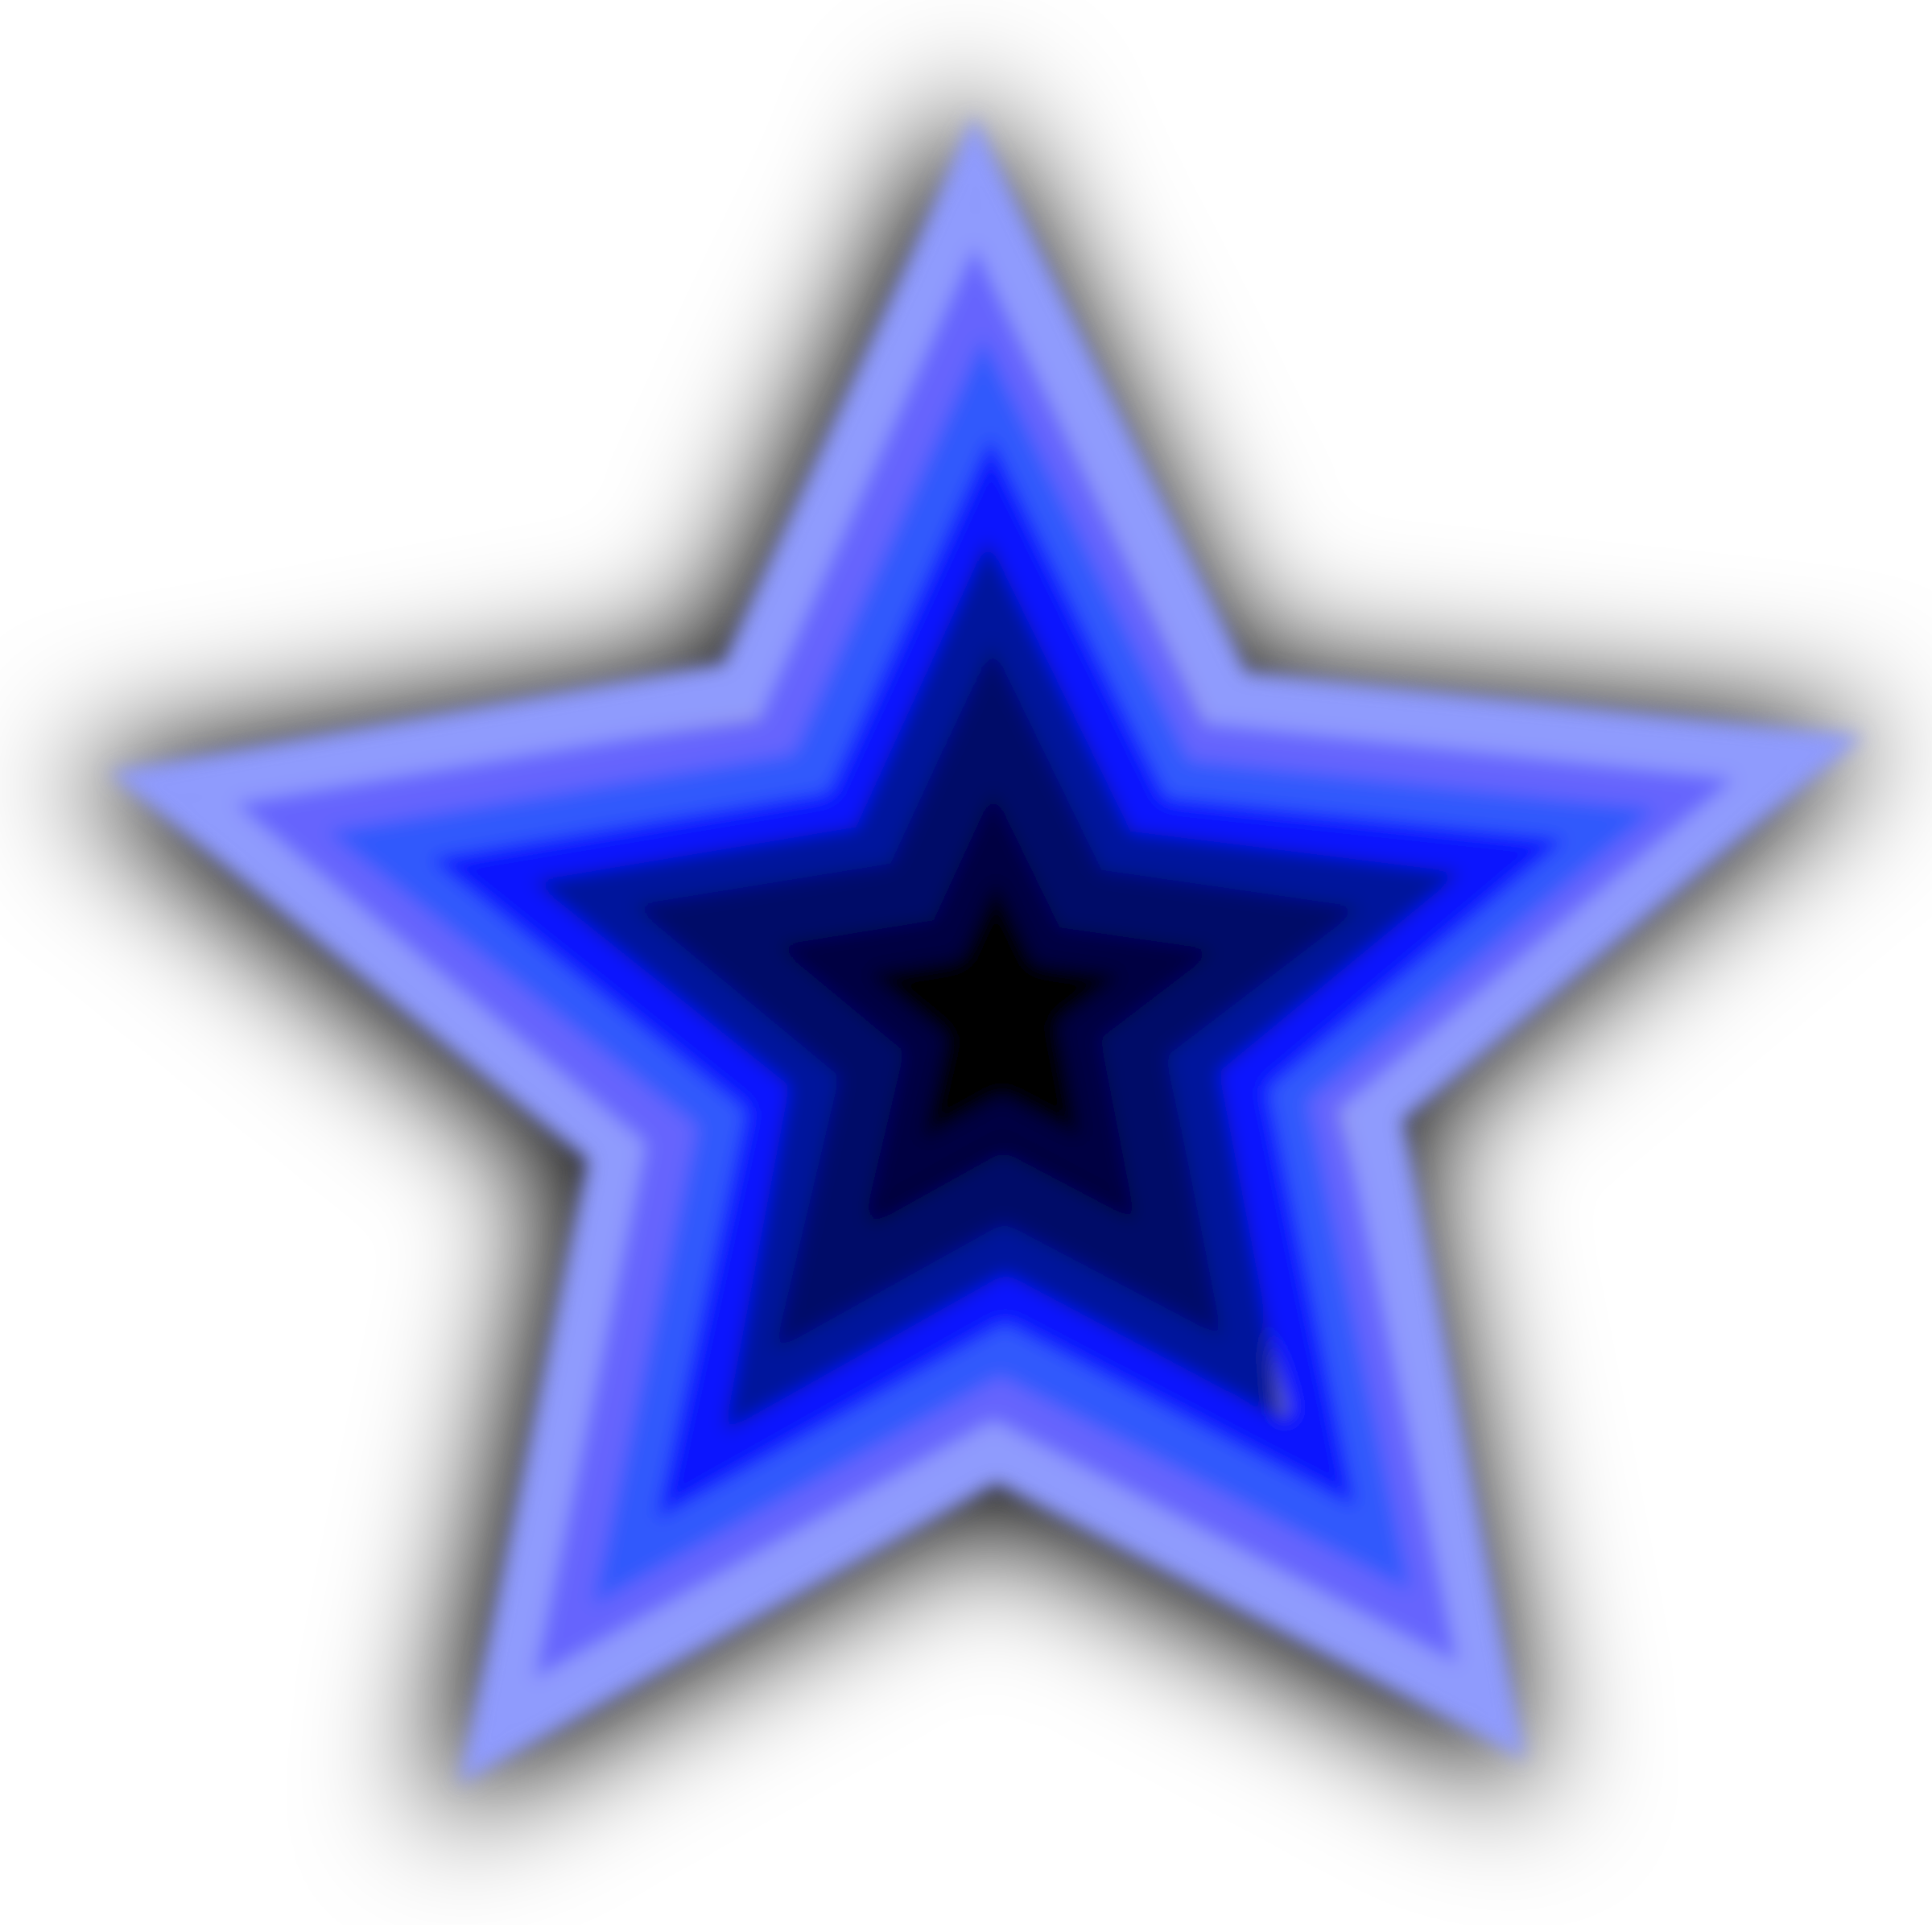 Stars (simple) 1 by mystica